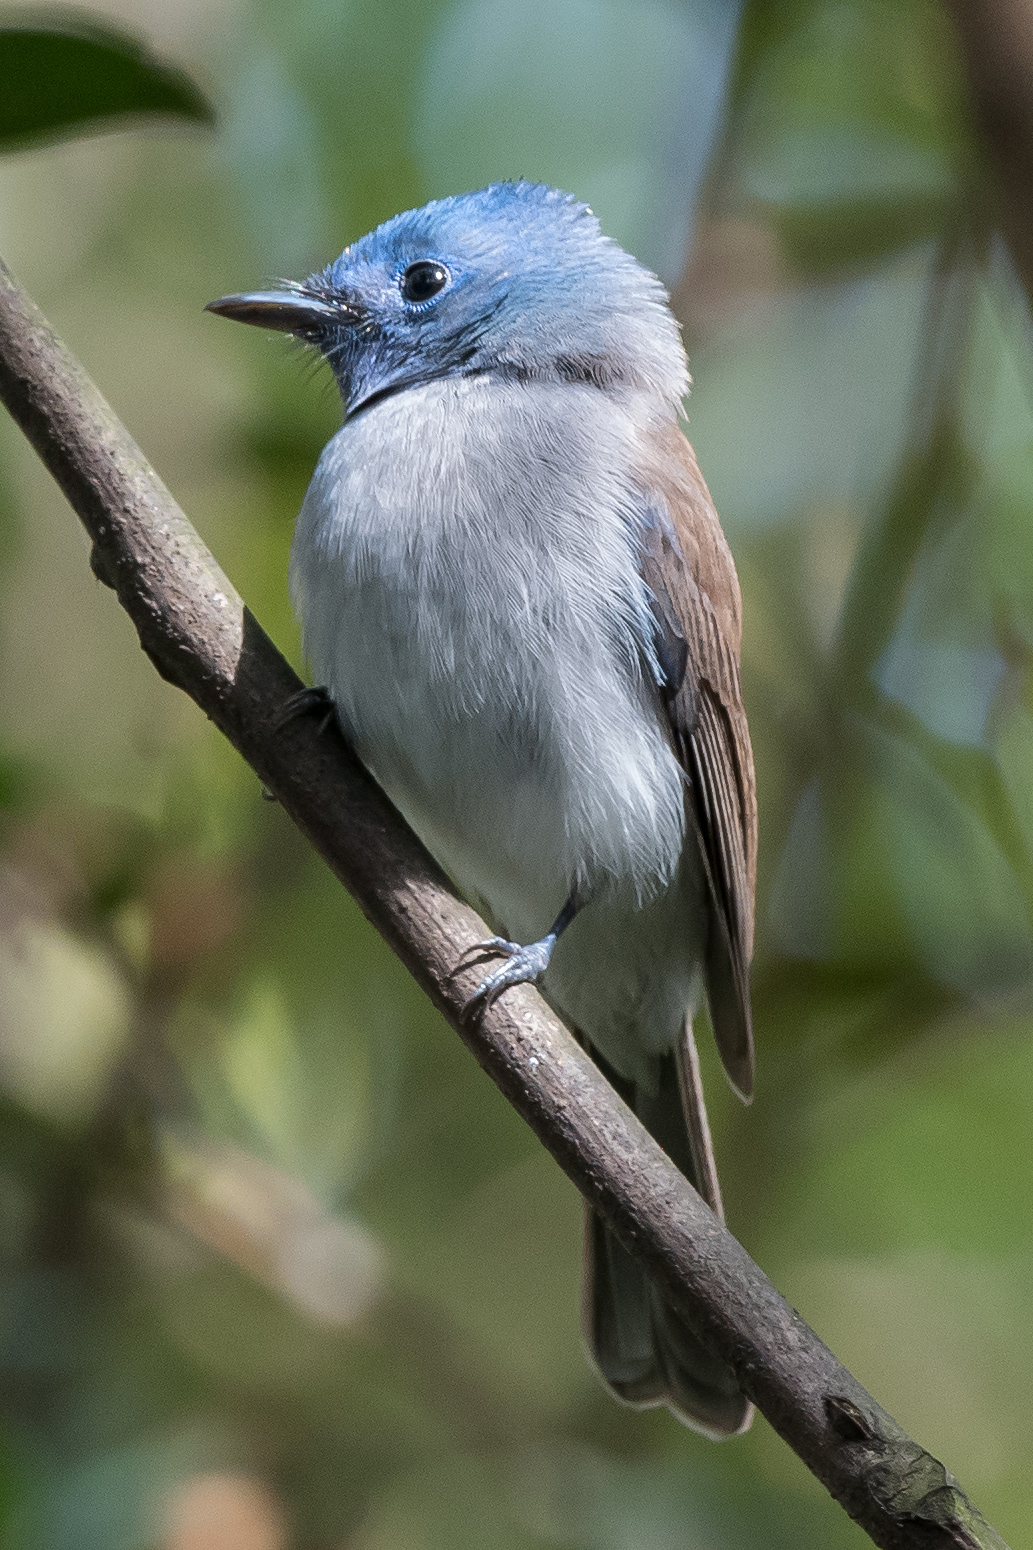 Black-naped Monarch, Wusong-Paotaiwan Park, Shanghai. Photo by Kai Pflug.